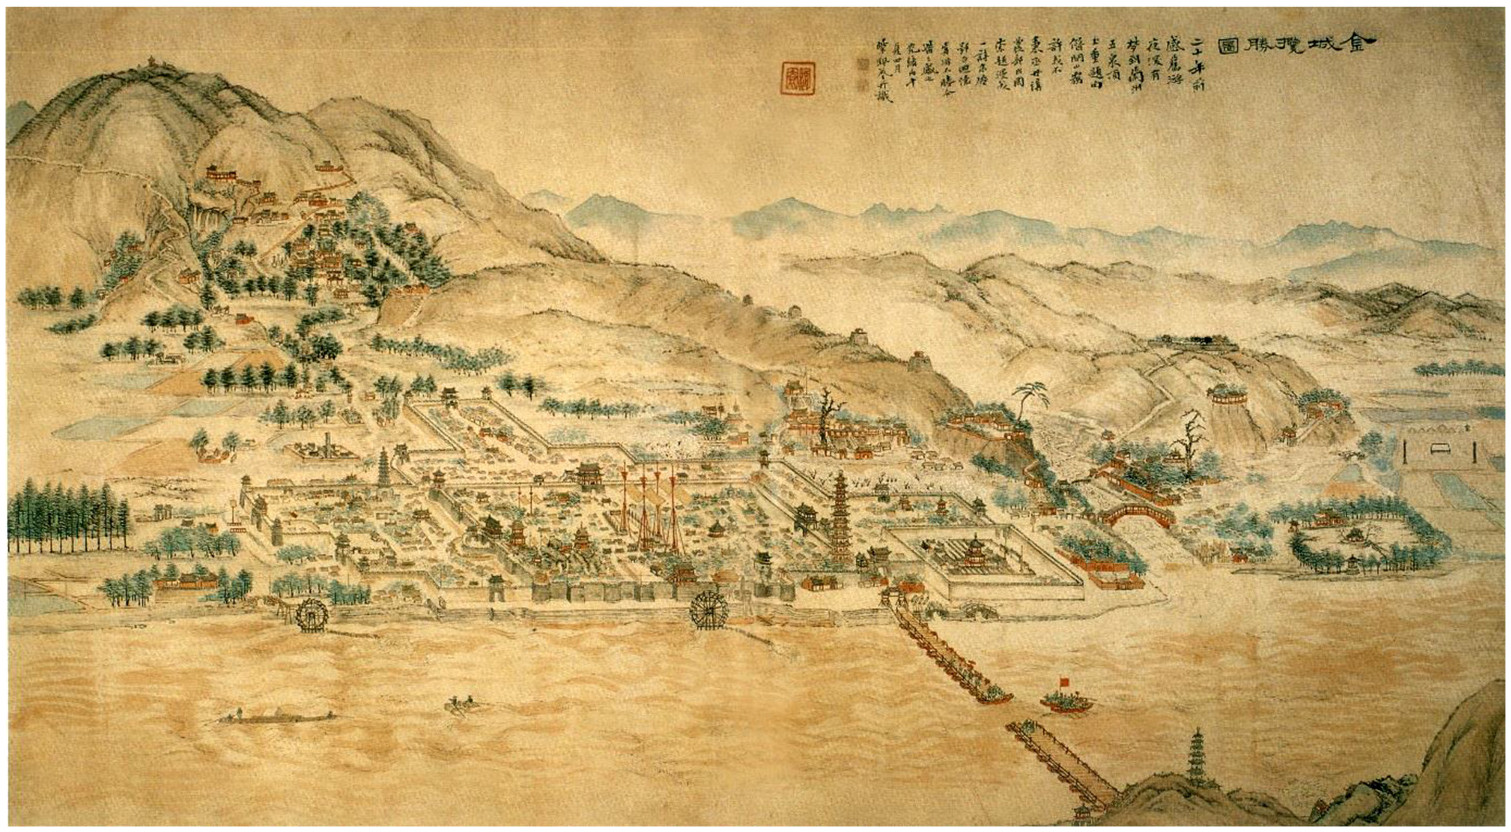 Figure 2. Map of Jincheng (Lanzhou) made during the reign of Emperor Guangxu of the Qing Dynasty, who ruled from 1875 to 1908.